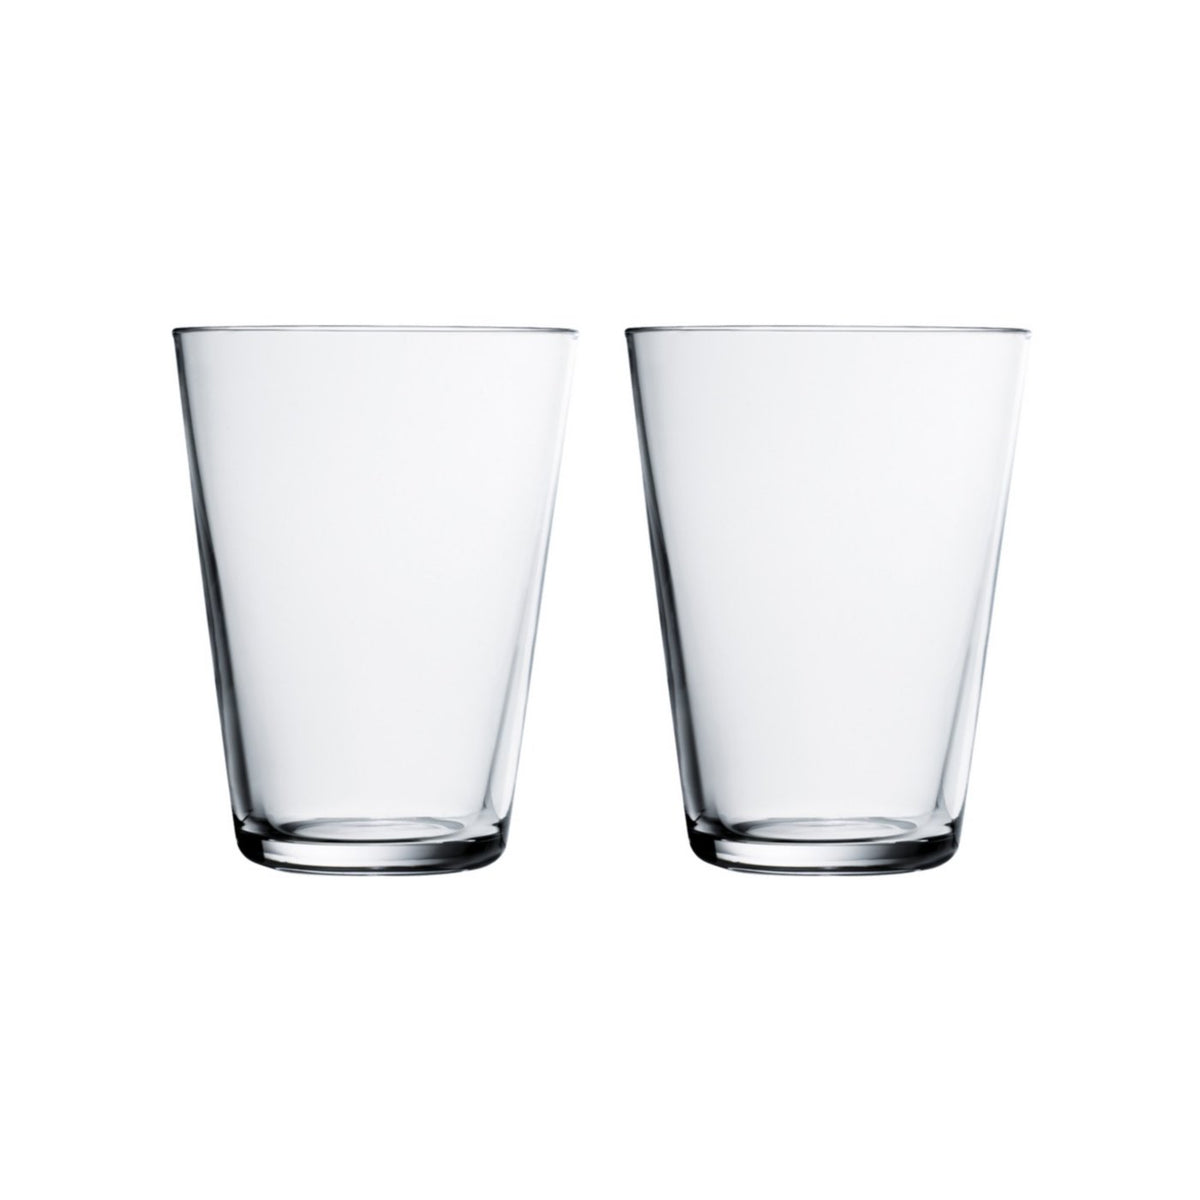 Kartio Tumbler 13.5 oz, set of 2